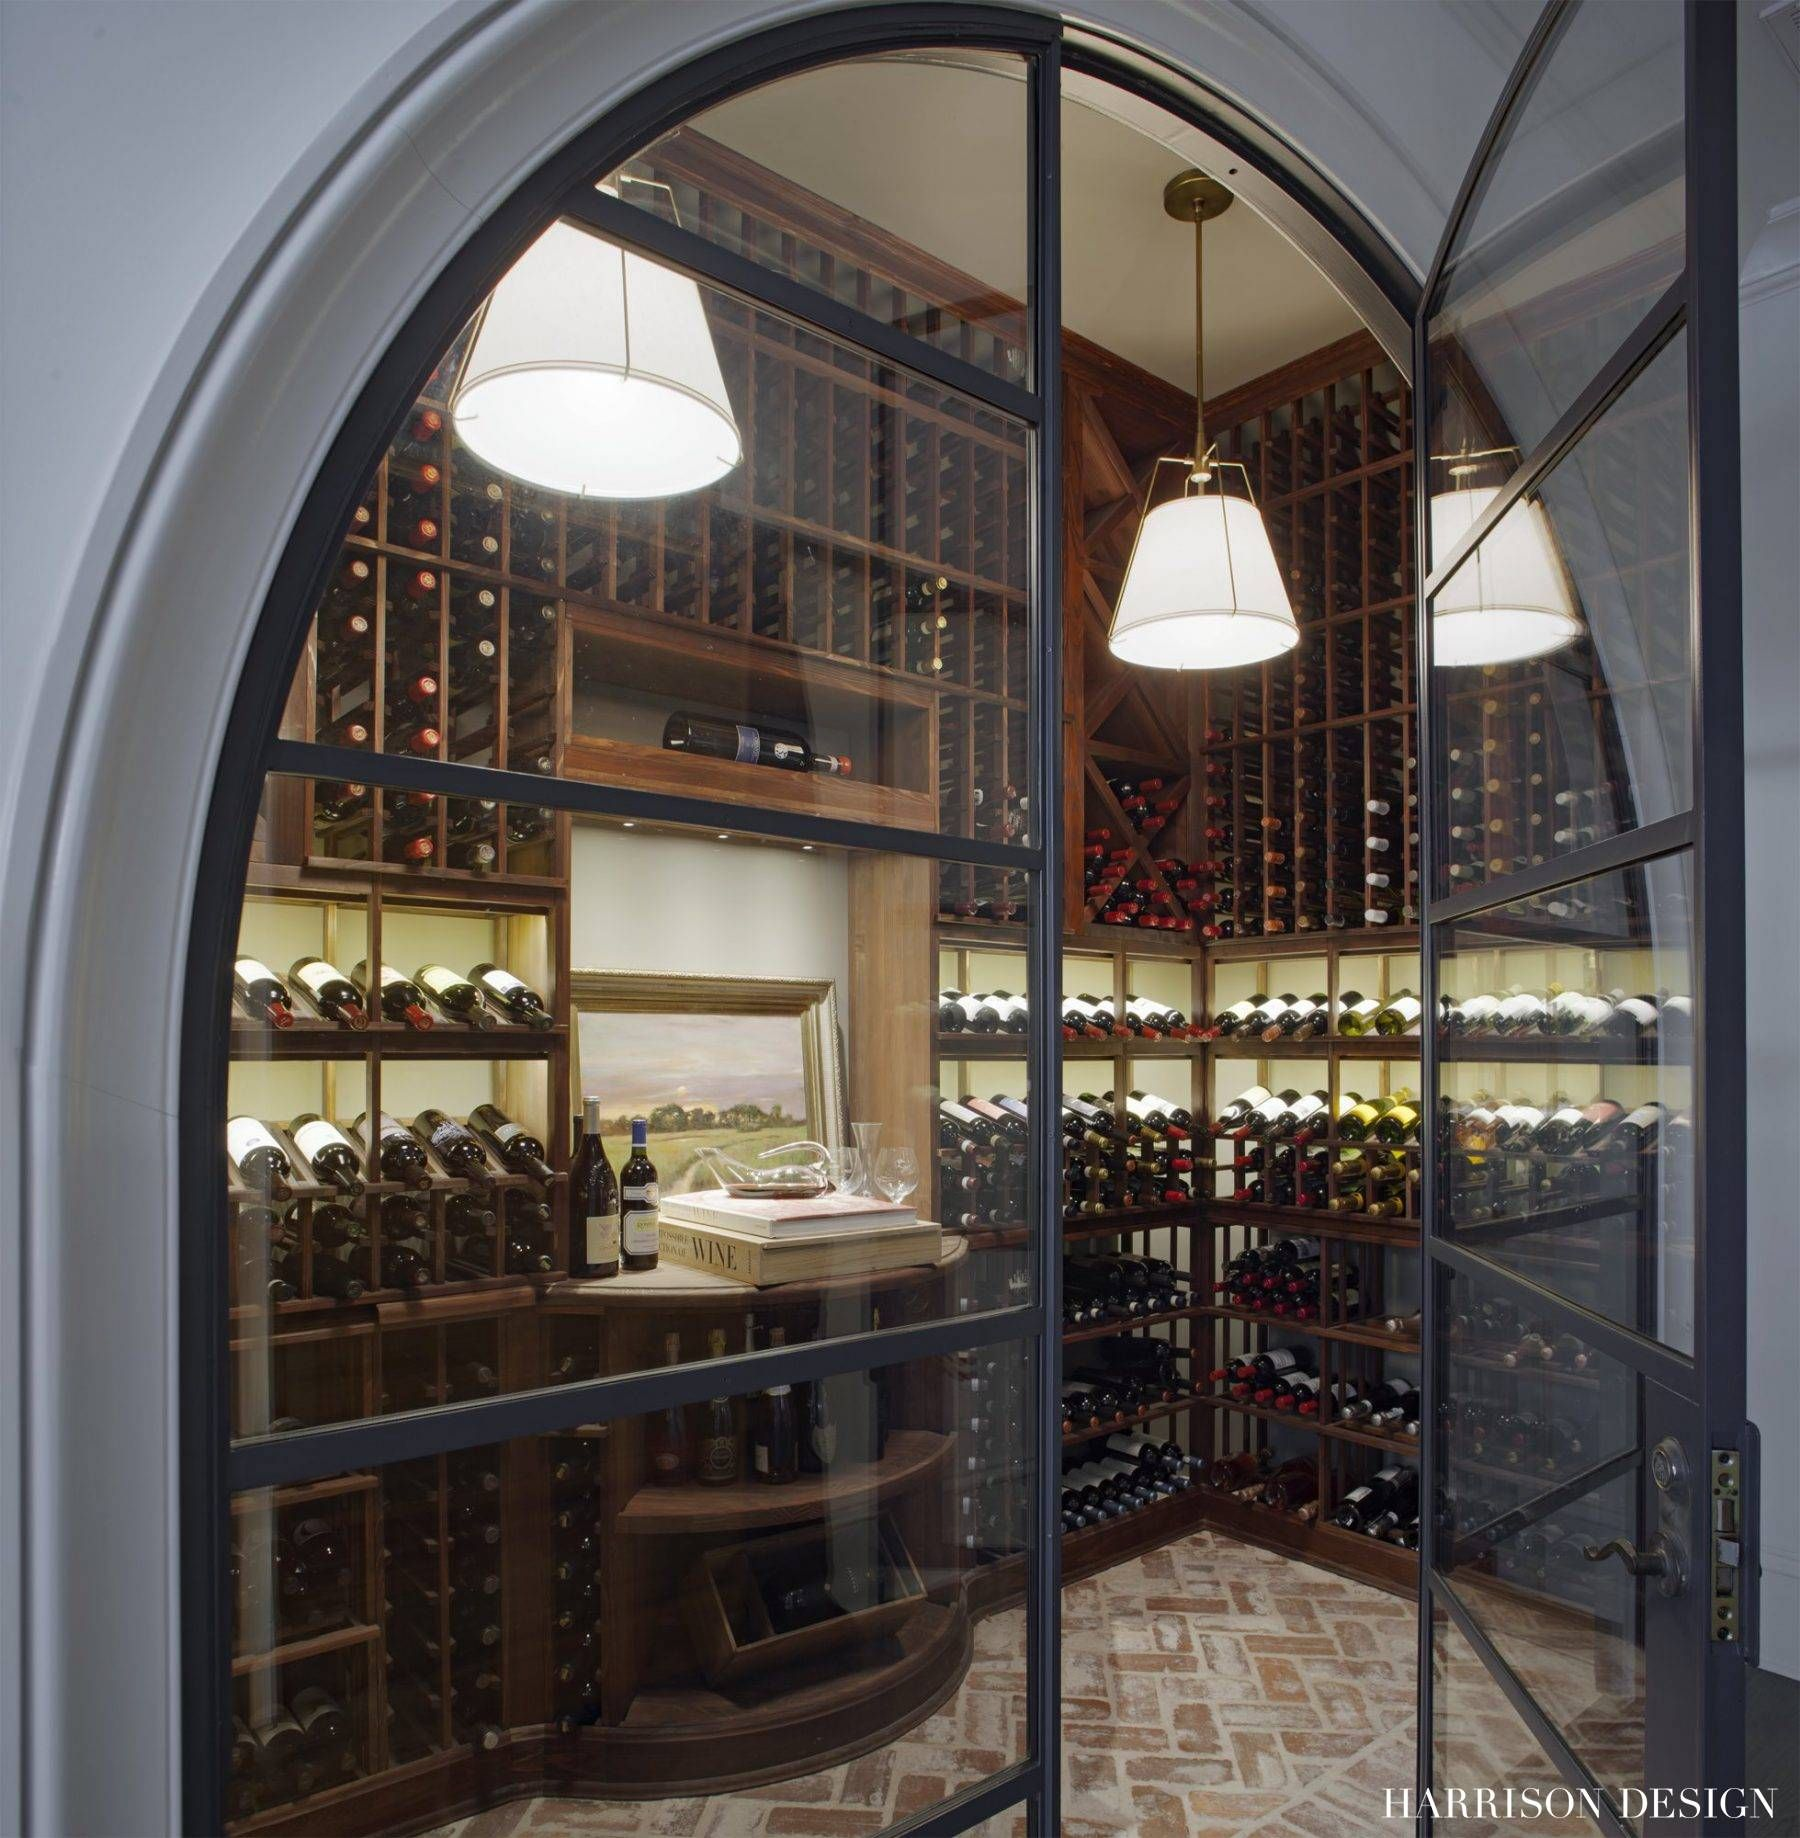 Steel Doors Add Modernity To This Sophisticated And Elegant Wine